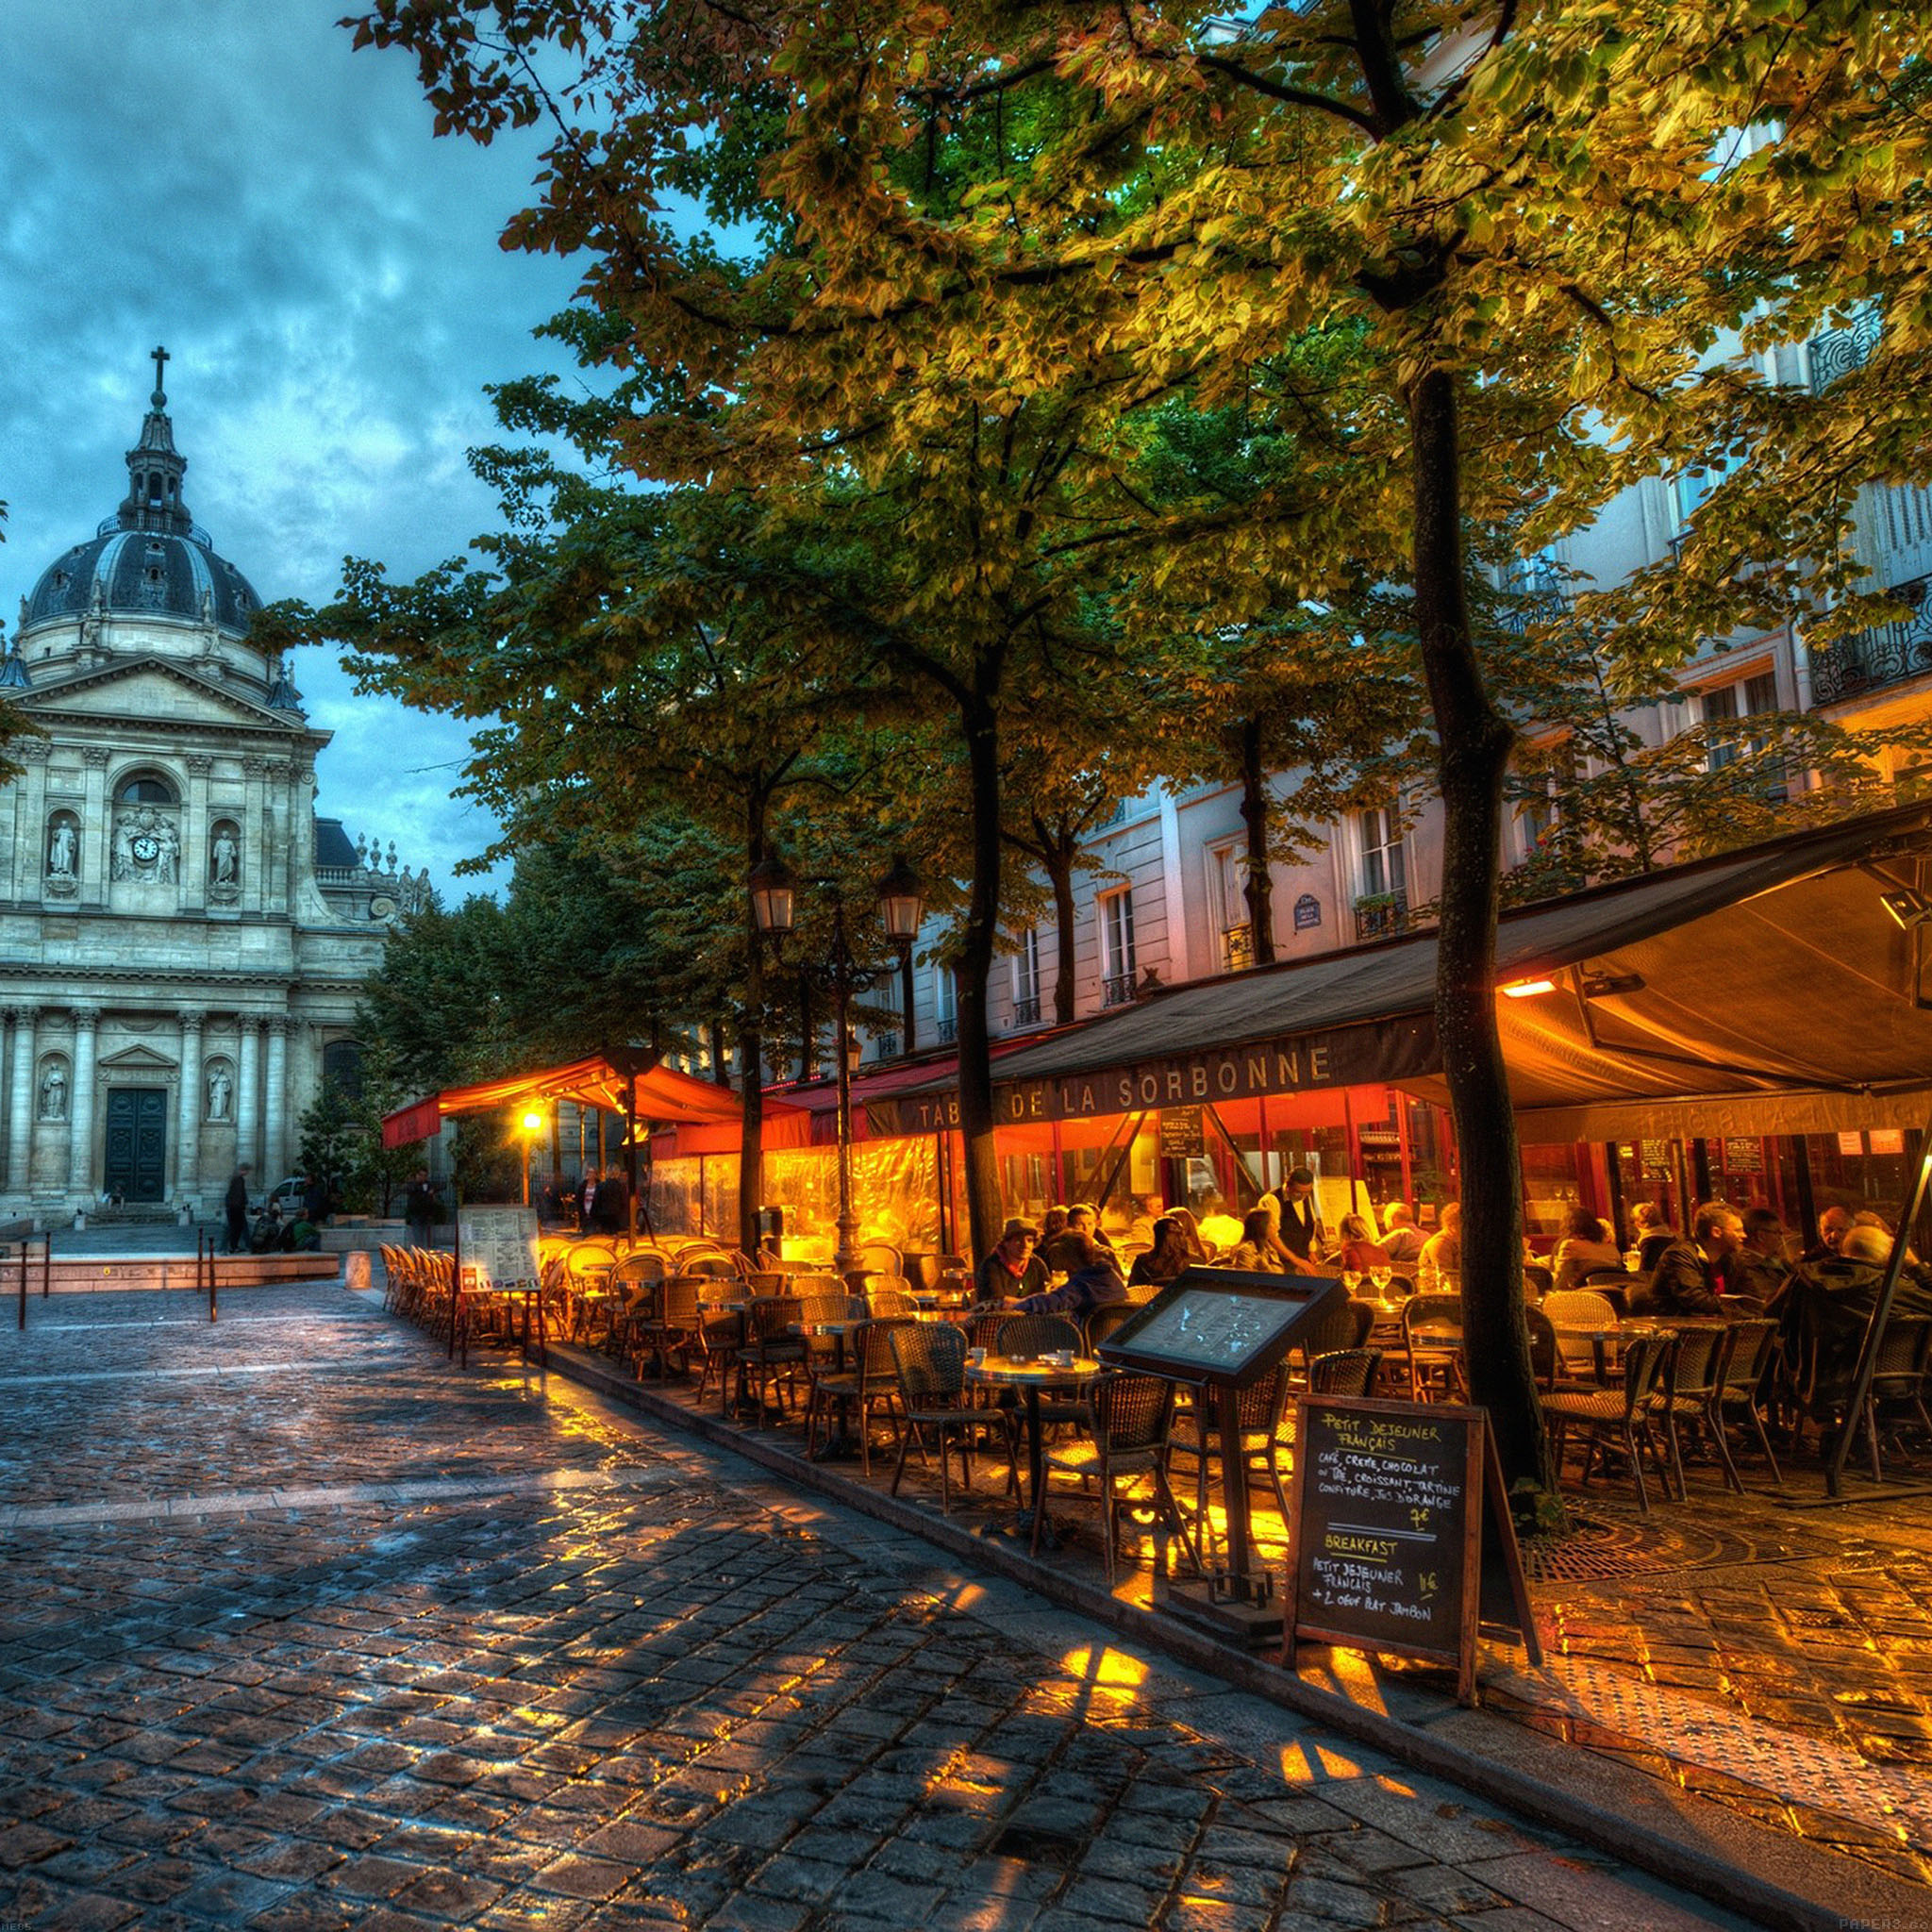 Google Fall Wallpaper Me85 De La Sorbonne City Street Papers Co